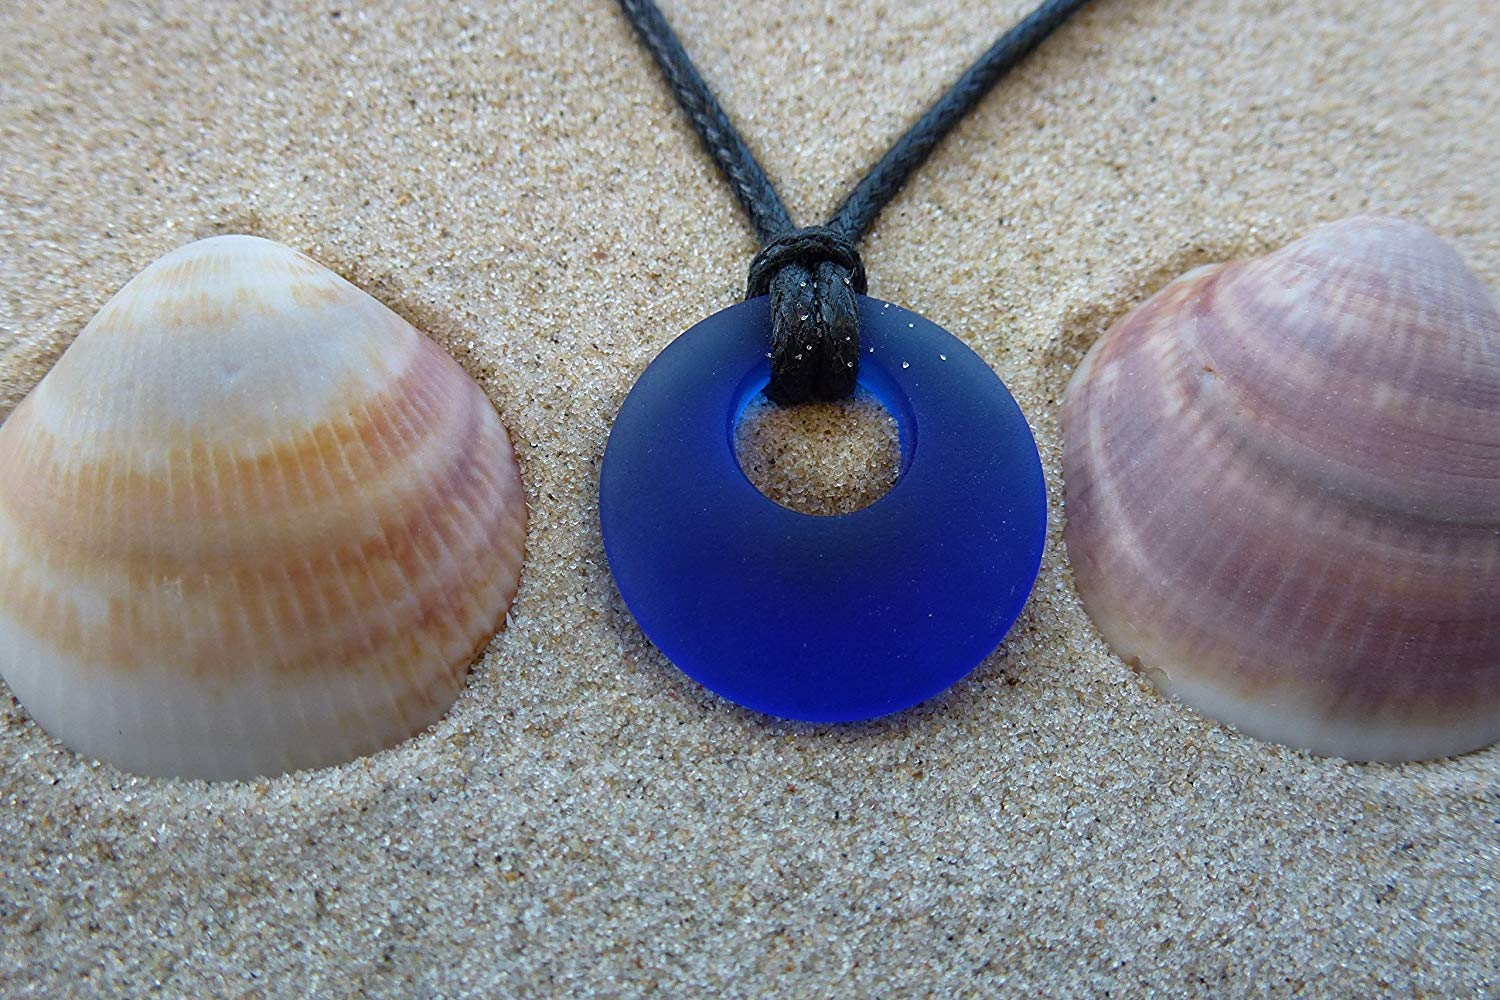 Ocean mystery surf beach sea glass mermaid small 0.5 inch donut shape small beautiful pendant blue handmade necklace, aqua unisex jewelry on a waxed cotton 24 inch cord with recycled sea glass